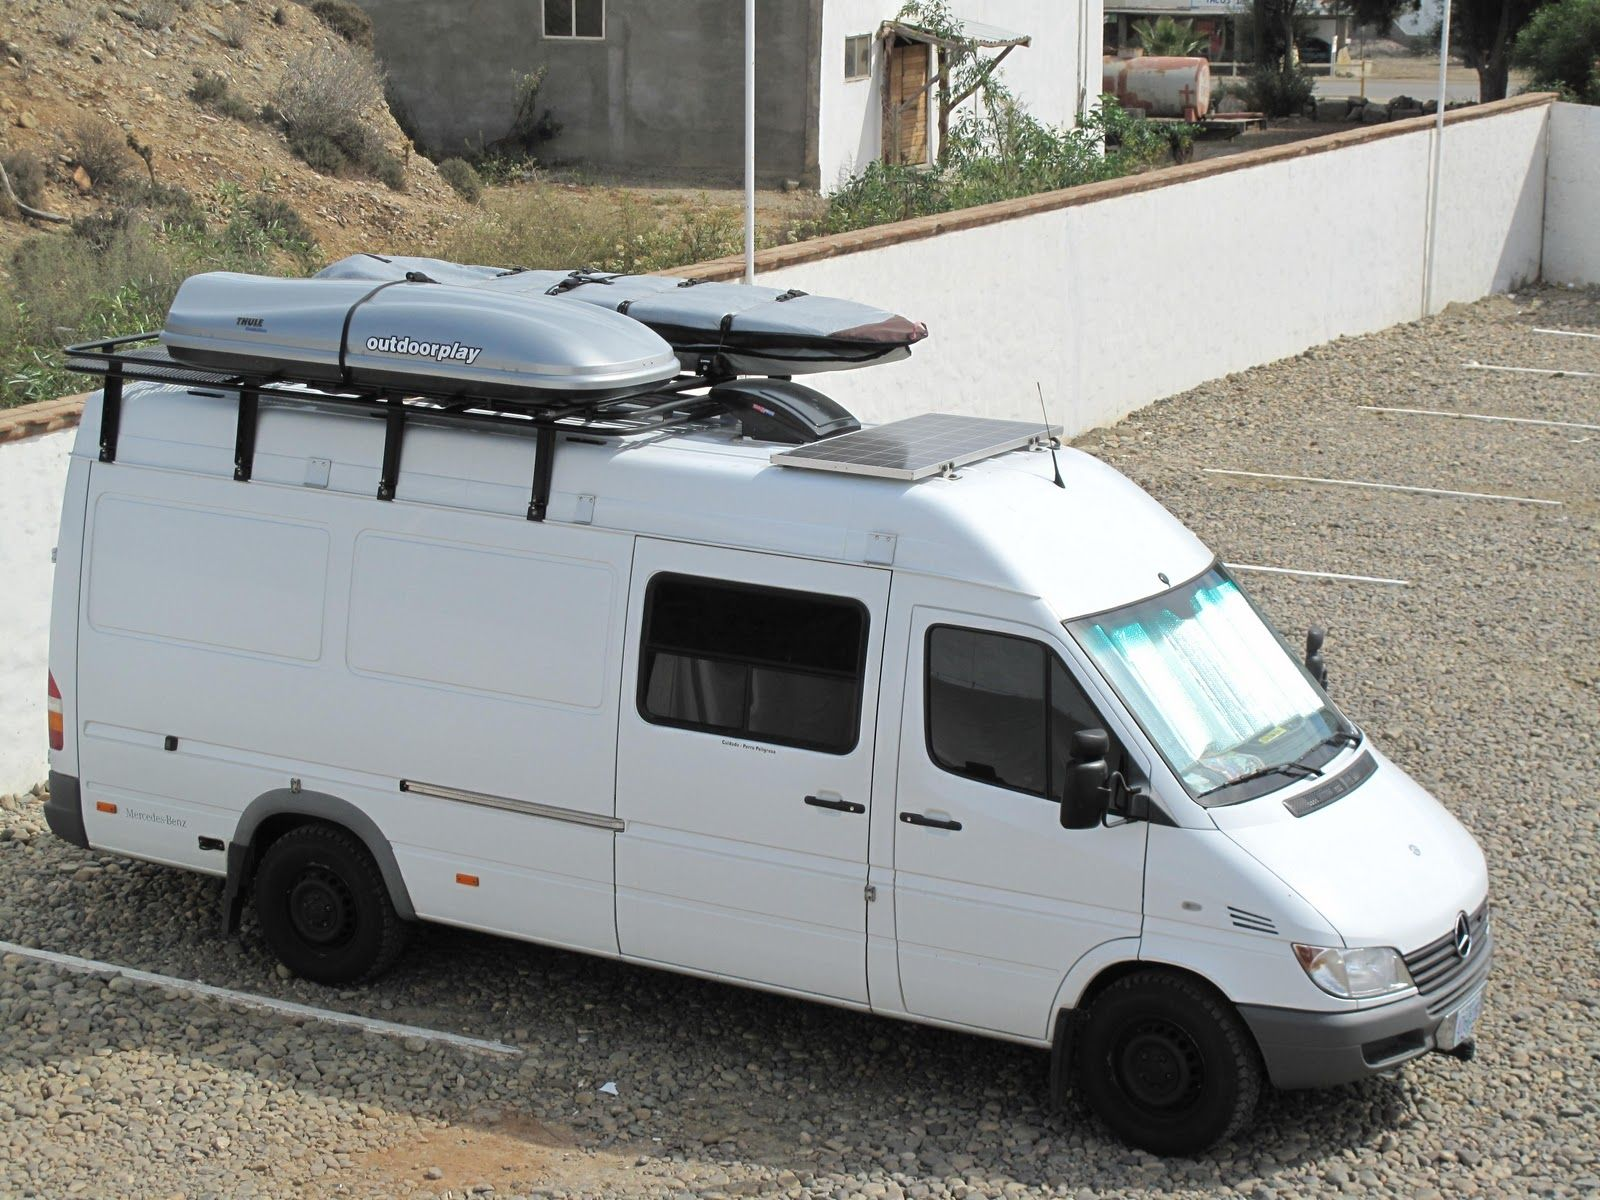 Good placement of vent for roof rack panel and cook area for Mercedes benz sprinter camper